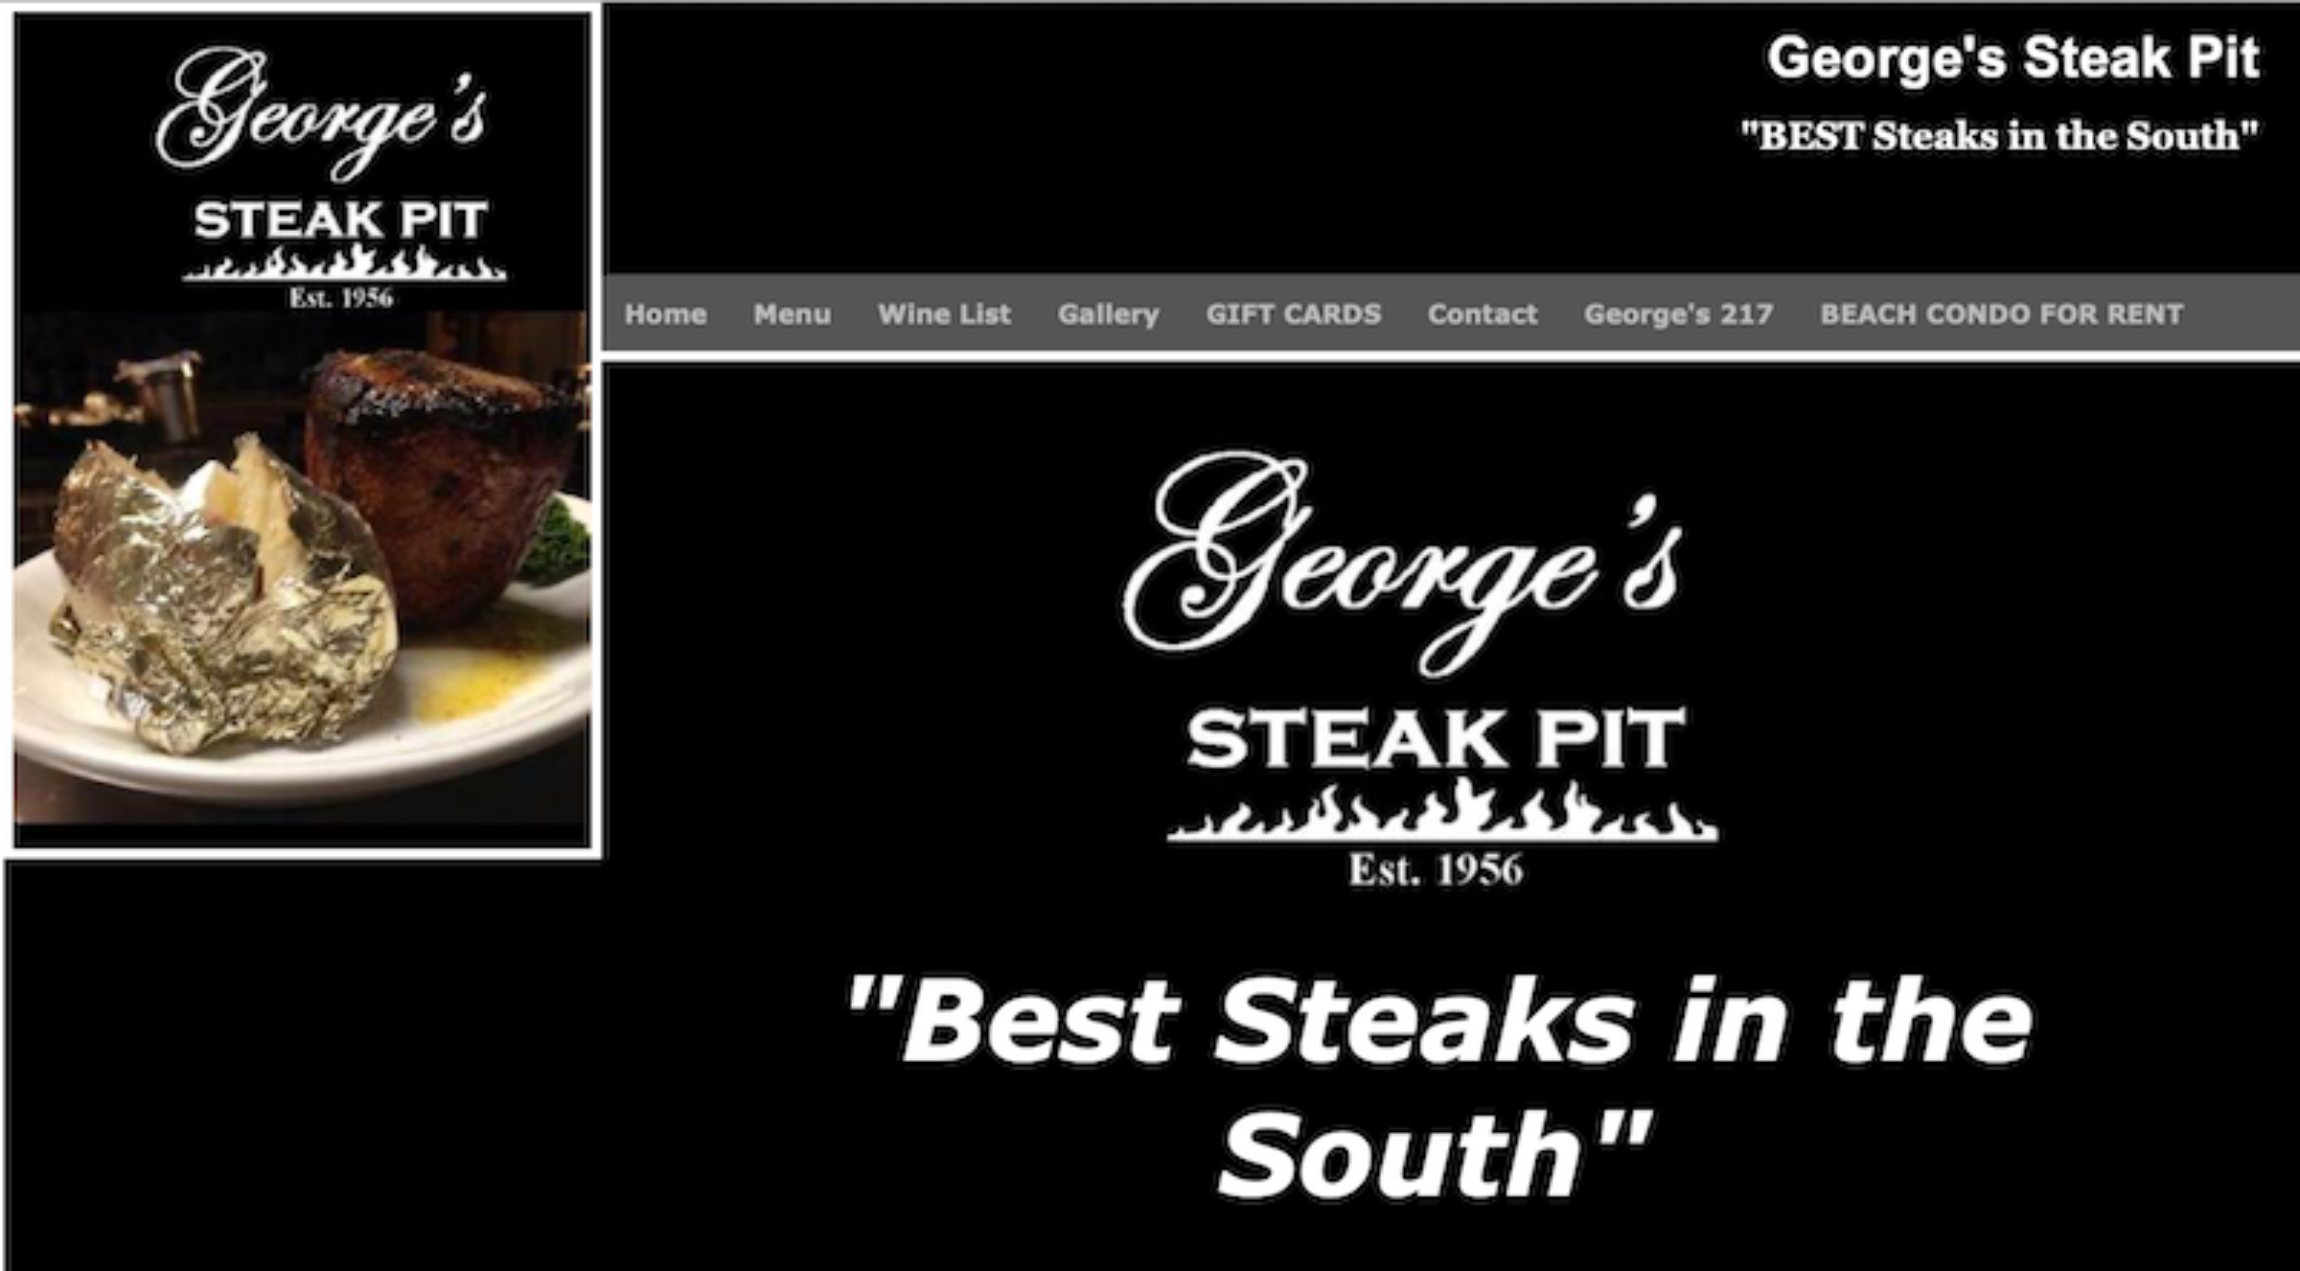 Screenshot from George's Steak Pit showing a dated website layout. The main element is a large quote: Best Steaks in the South